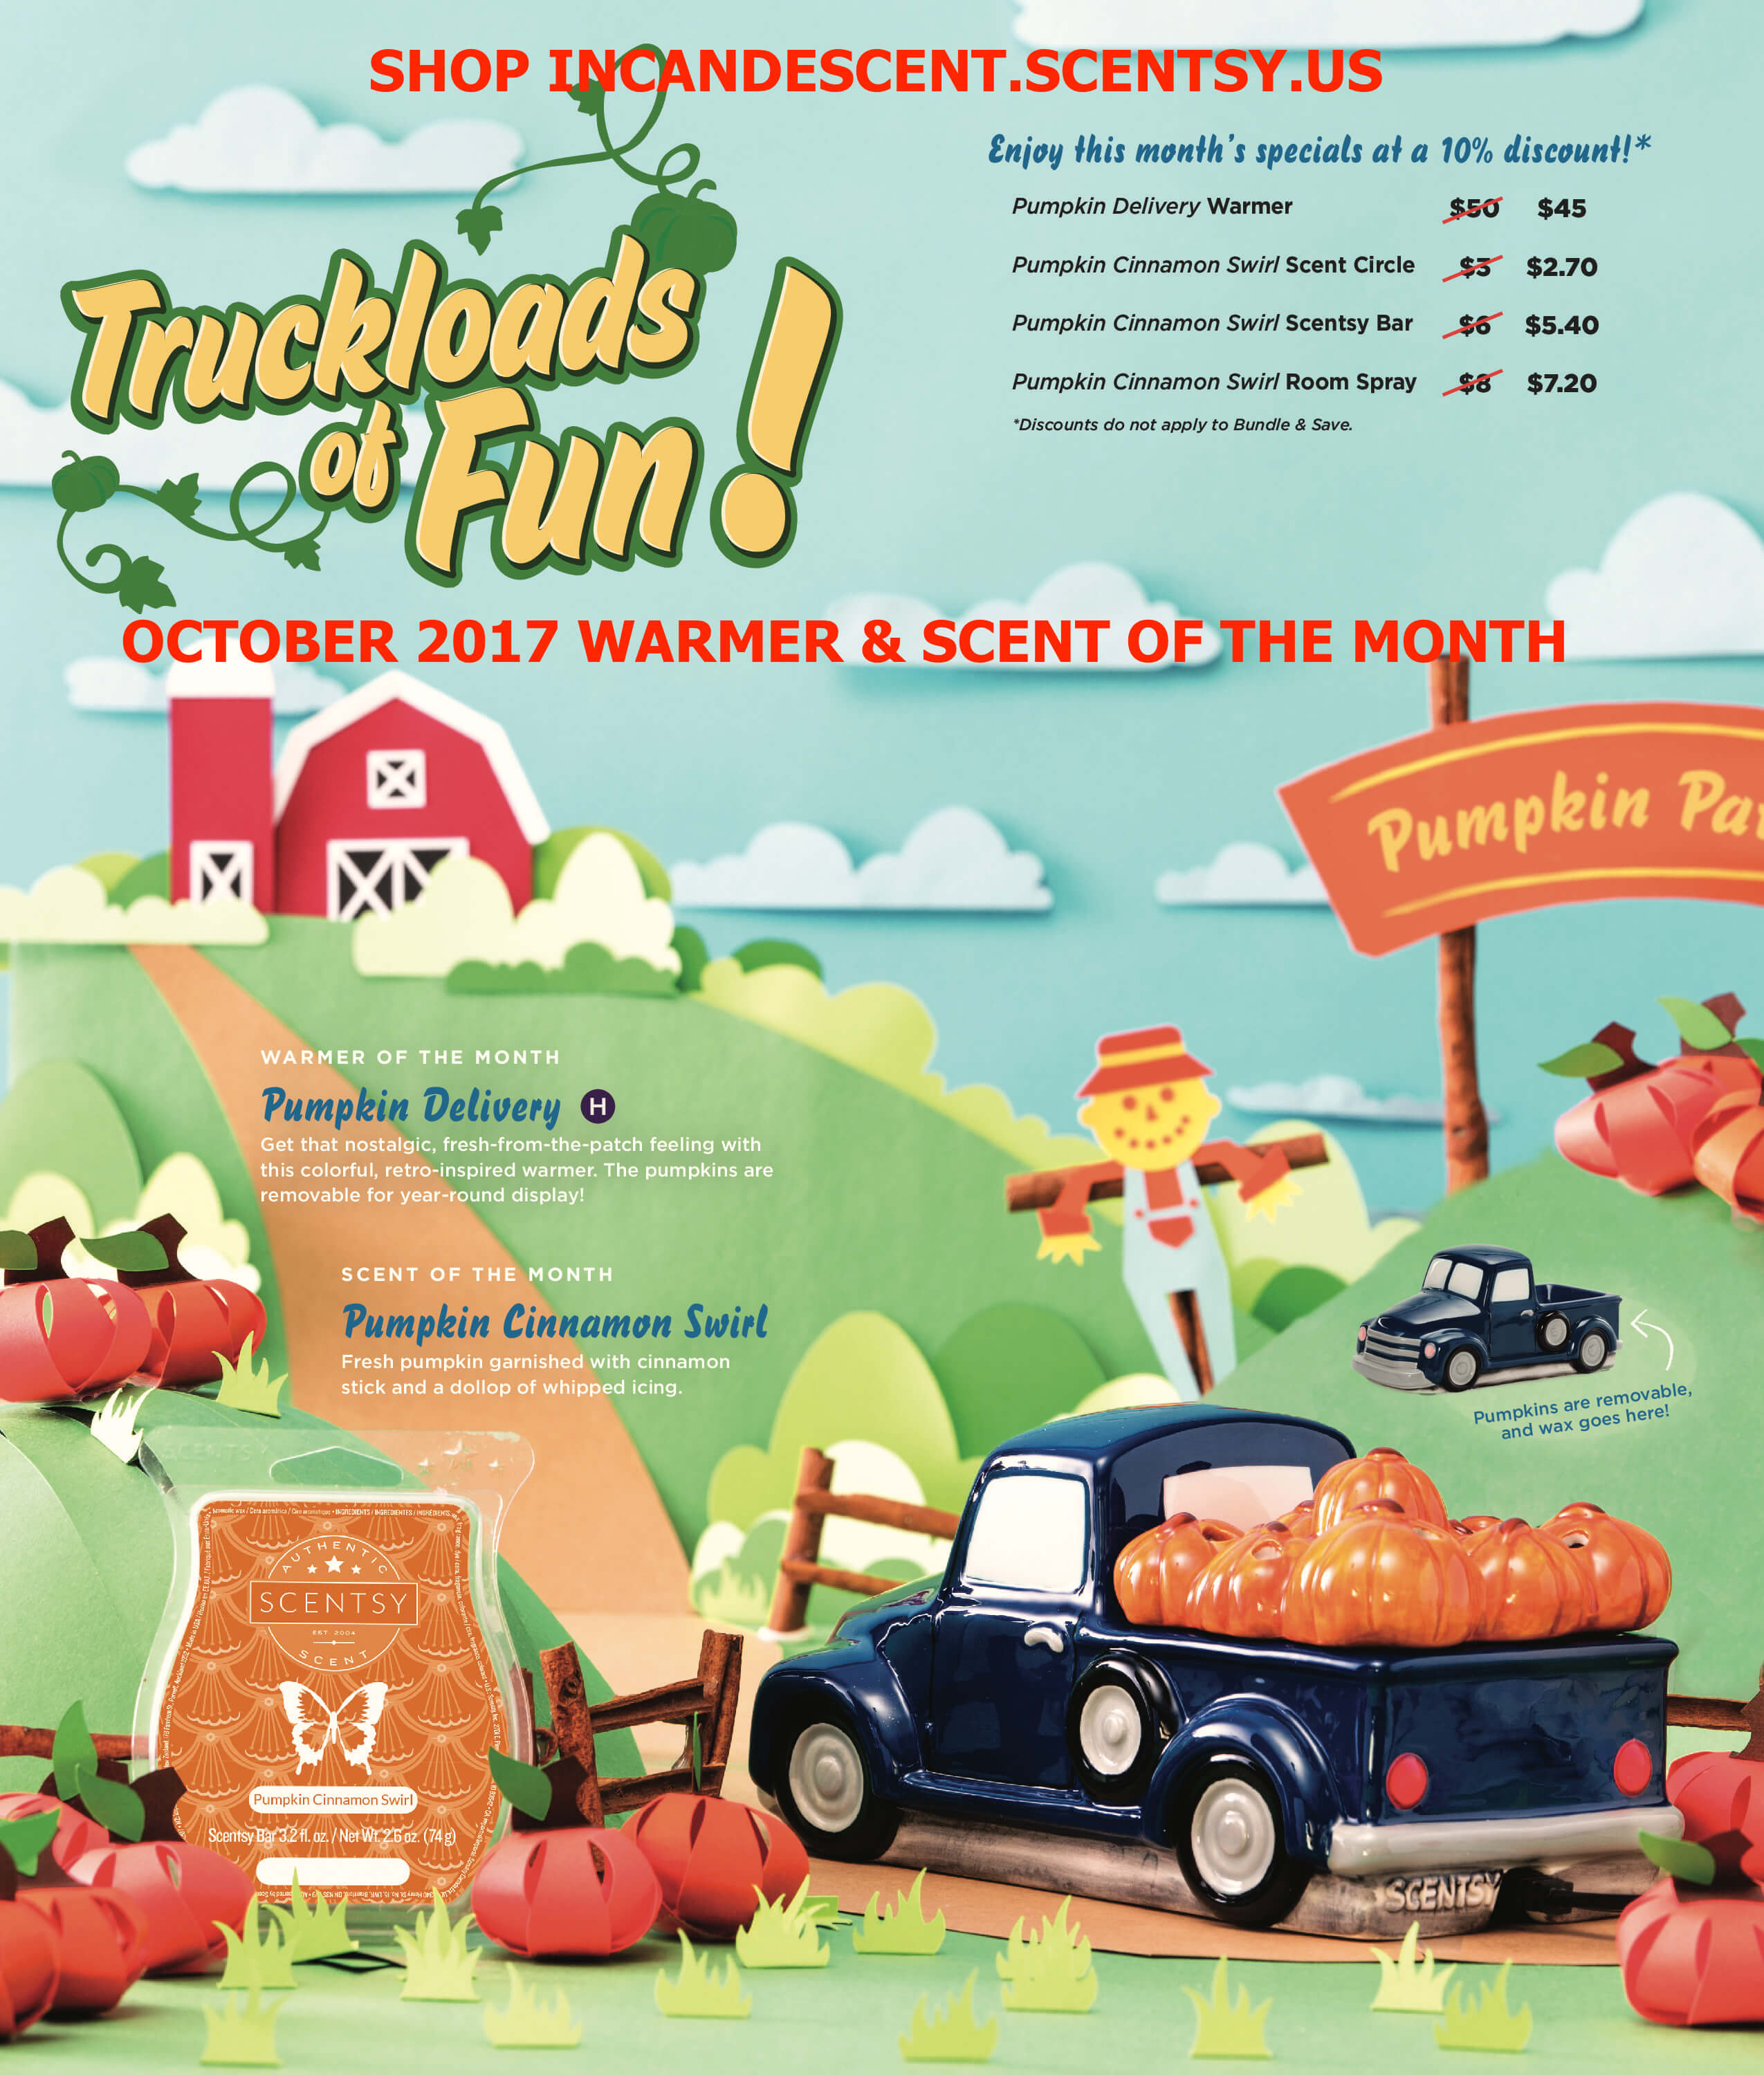 SCENTSY OCTOBER 2017 WARMER & SCENT OF THE MONTH | SCENTSY OCTOBER 2017 WARMER AND SCENT OF THE MONTH - PUMPKIN DELIVERY TRUCK WARMER & PUMPKIN CINNAMON SWIRL SCENTSY FRAGRANCE